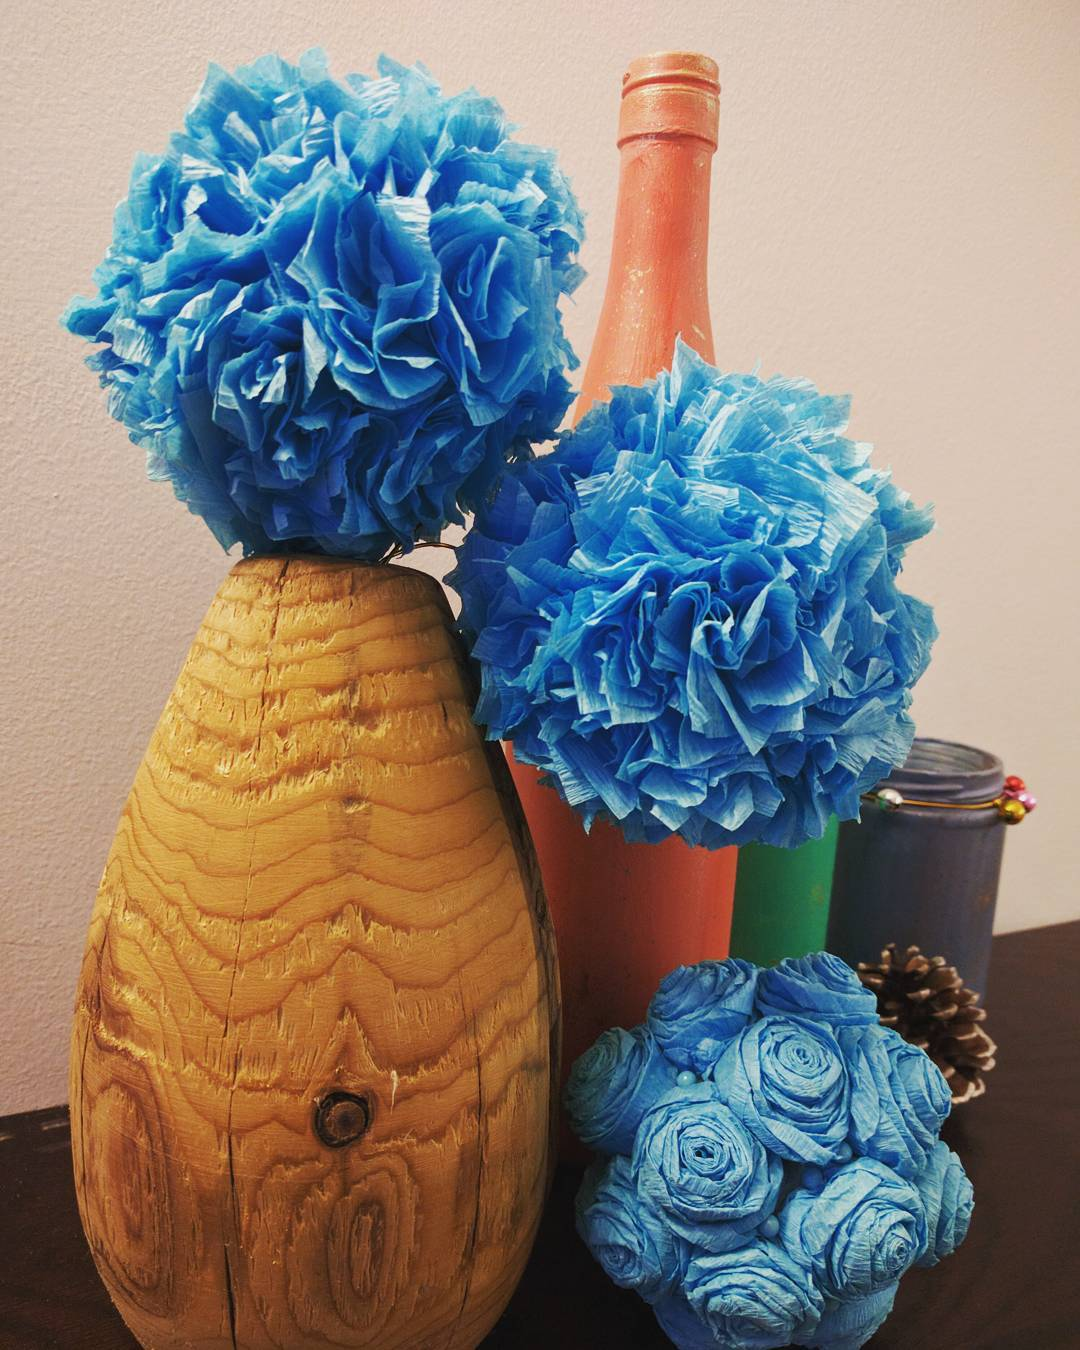 wood turned vase with paper flowers